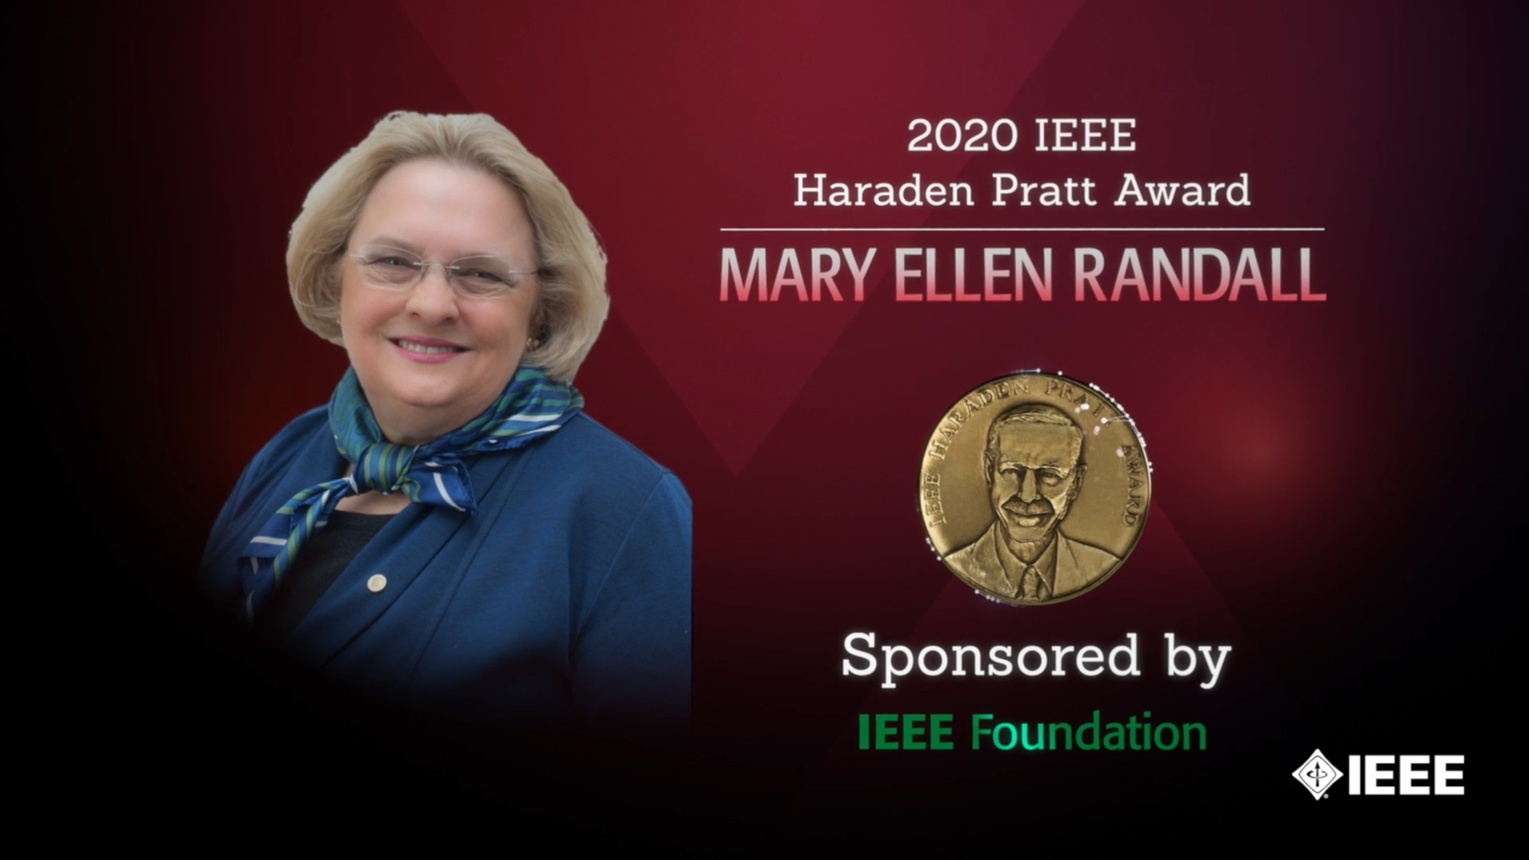 Honors 2020: Mary Ellen Randall Wins the IEEE Haraden Pratt Award